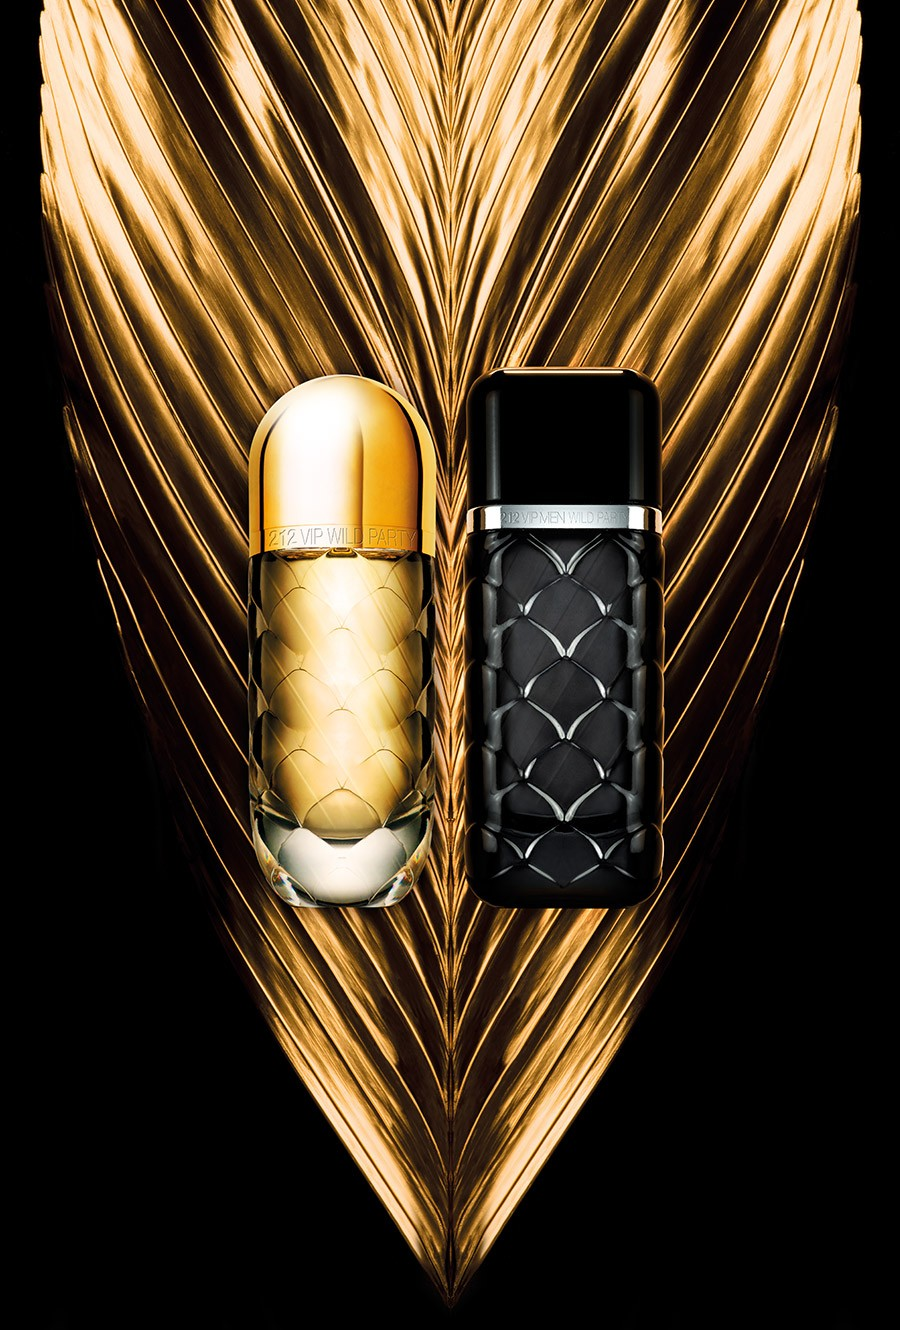 212 VIP Wild Party edt Carolina Herrera - ♀ женский парфюм, 2016 год.